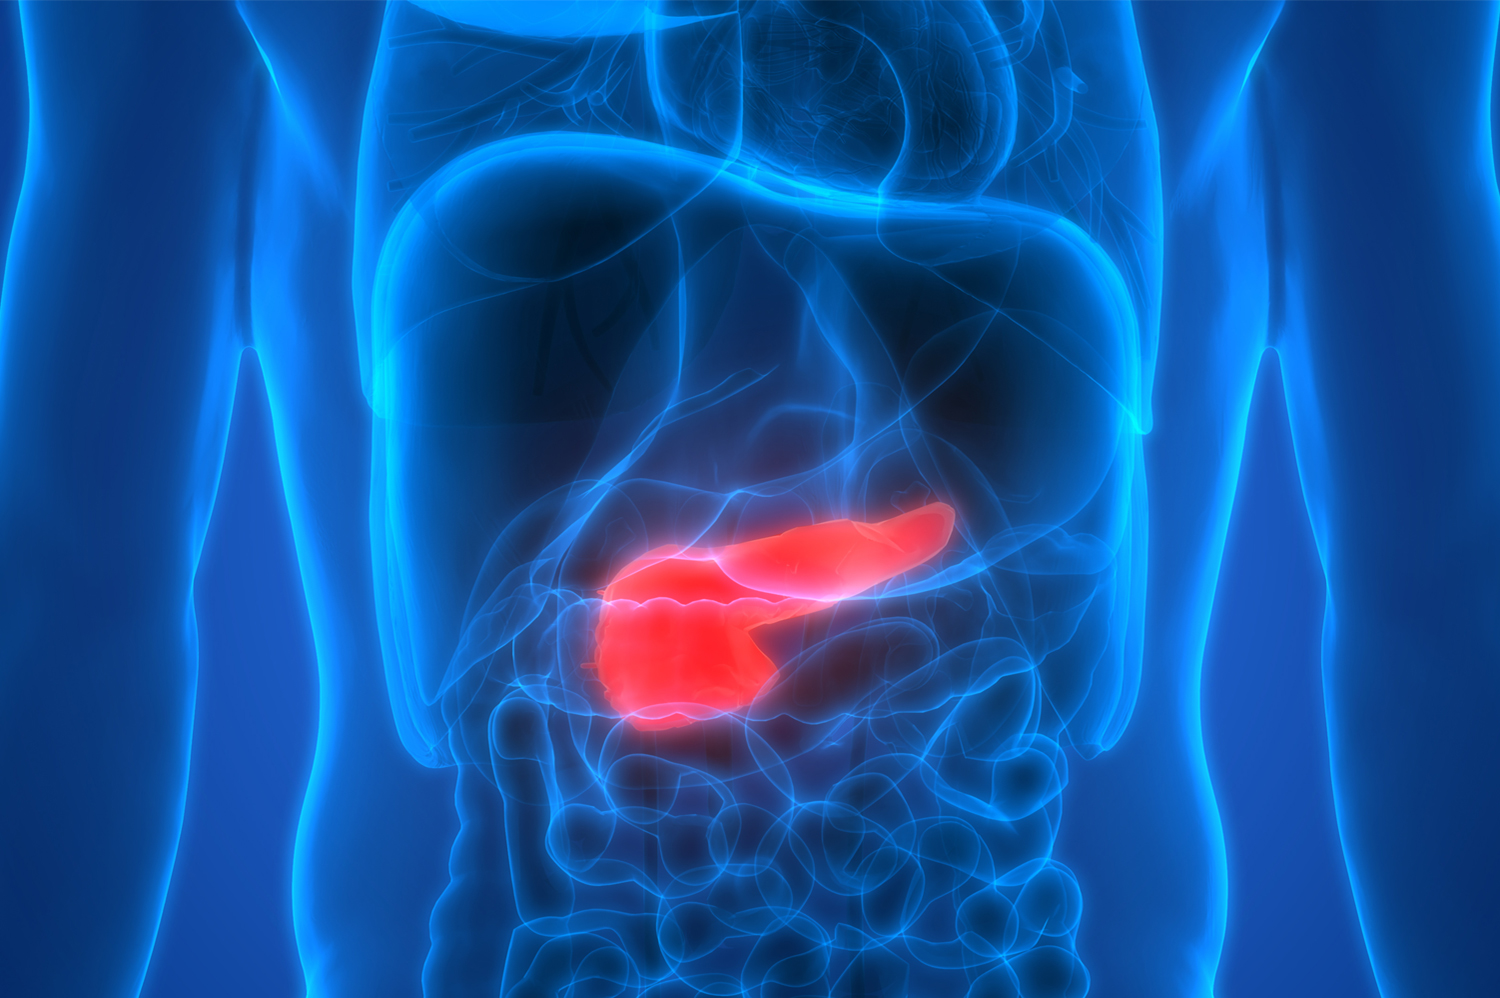 Image of a pancreas